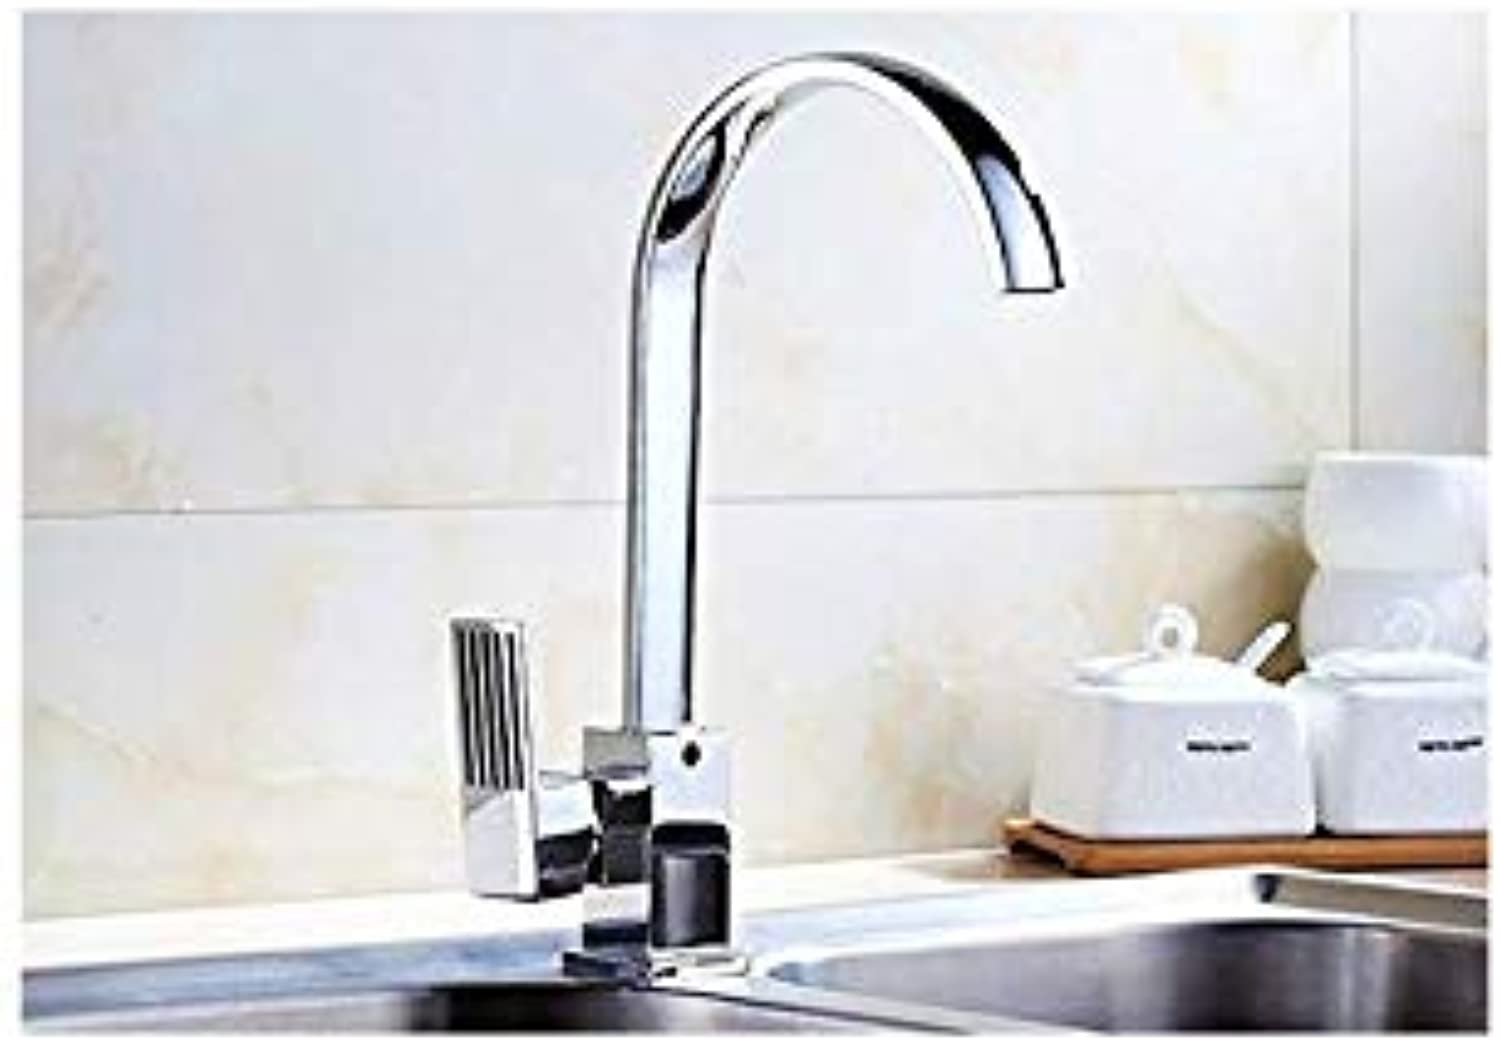 Kitchen Faucet Hot and Cold Water Trough Faucet Basin Wash Basin Dual-Purpose Copper Valve Body Kitchen Faucet Basin Faucet